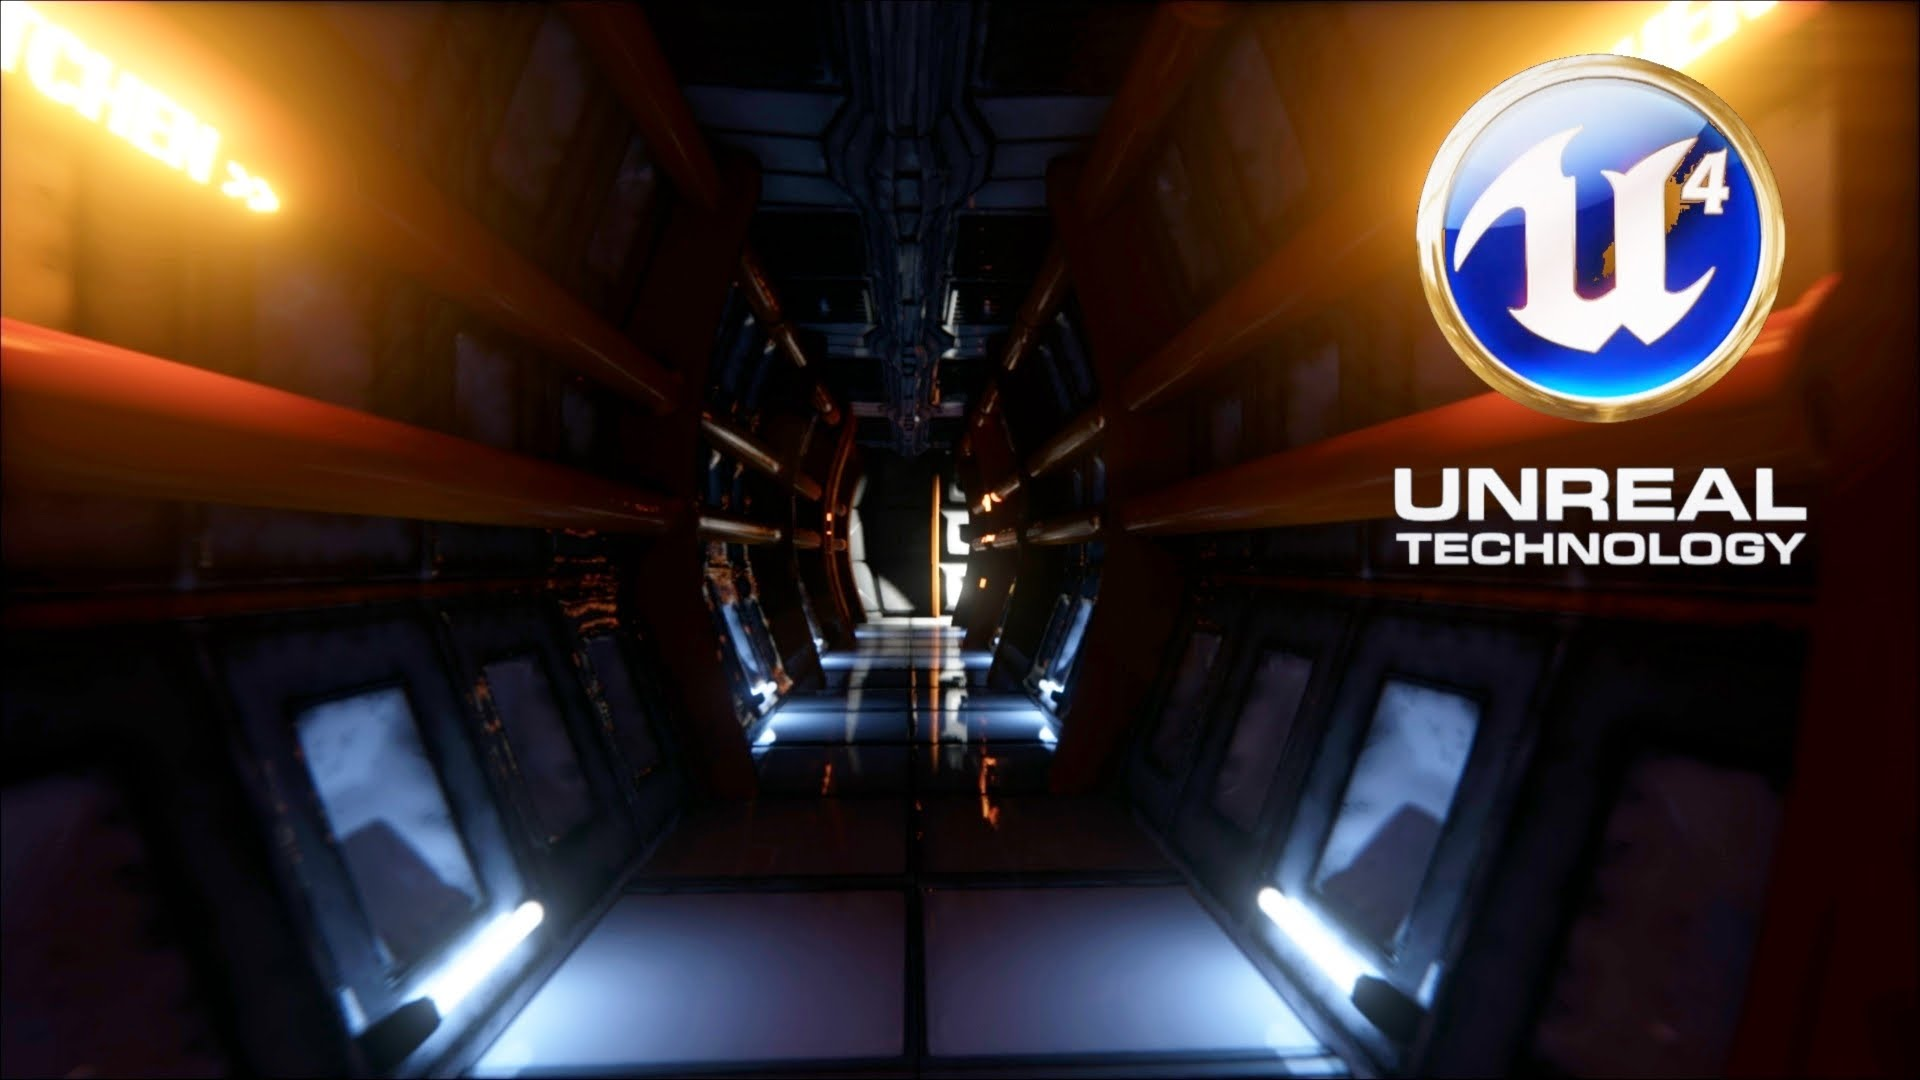 Download the Unreal Engine 4 Sci-Fi Horror 'Caffeine' Demo